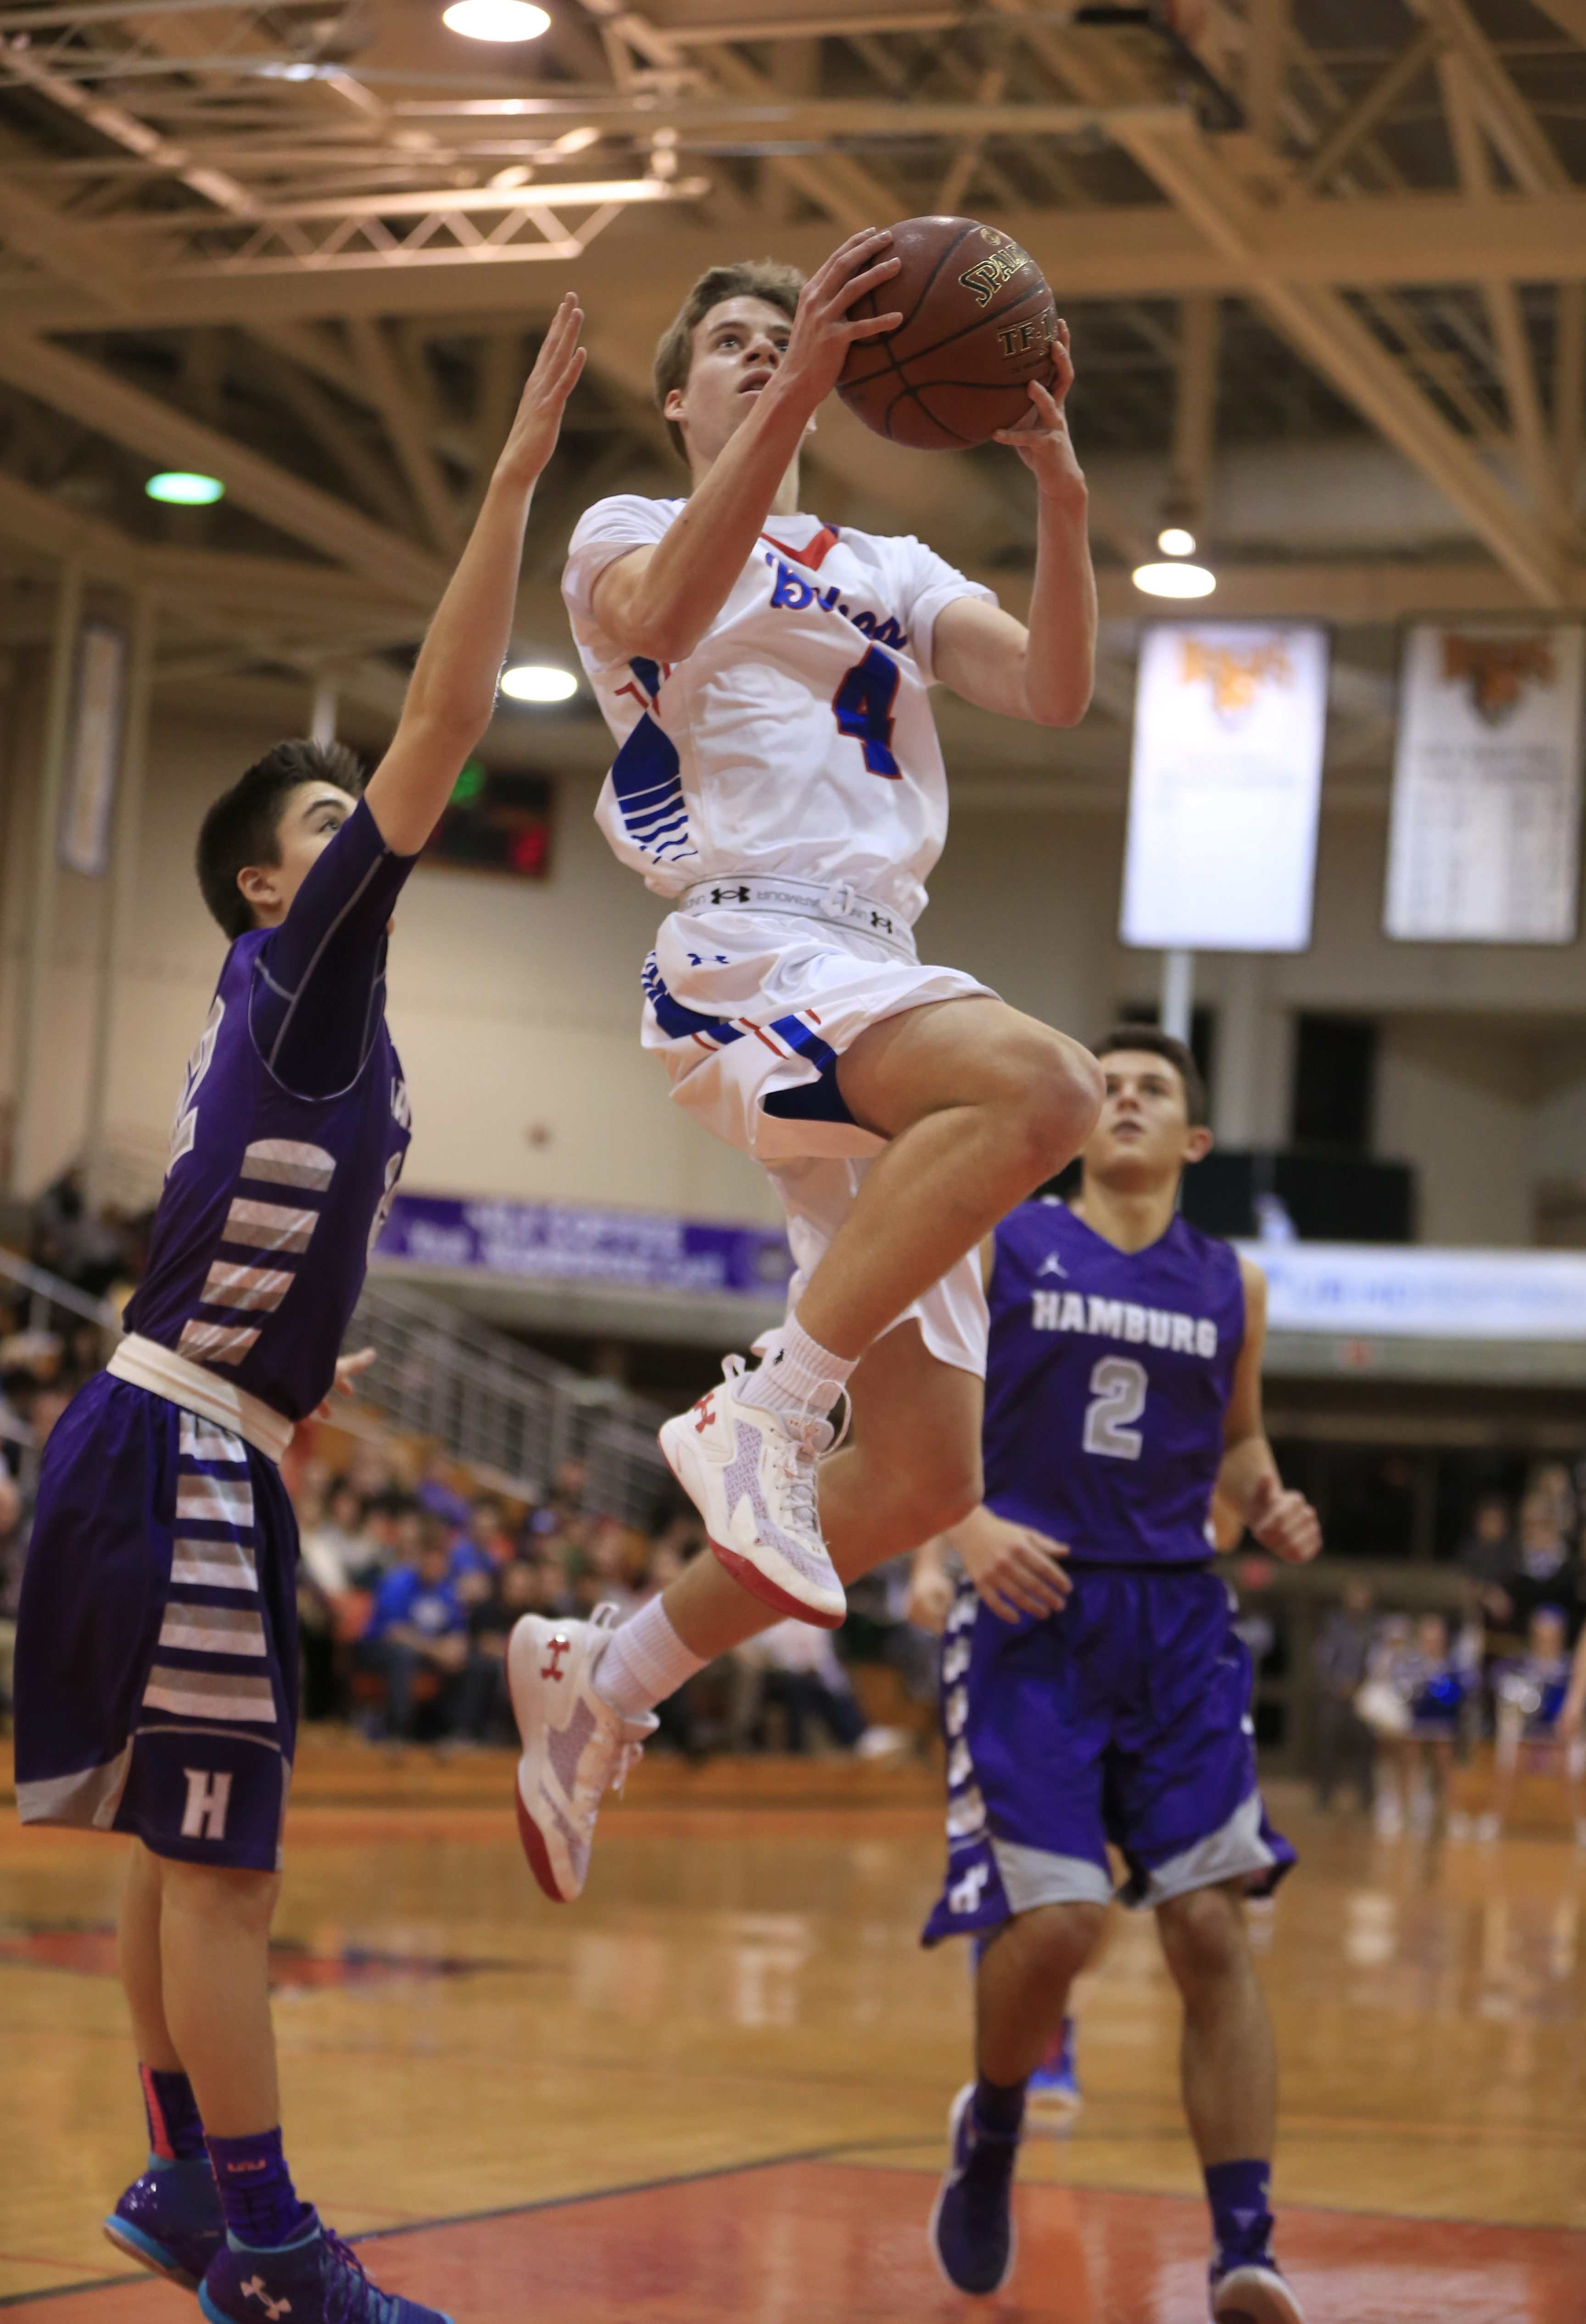 Williamsville South sophomore Greg Dolan scored 31 points as the Billies advanced to the Class A-1 title game with a 68-49 win over Hamburg.